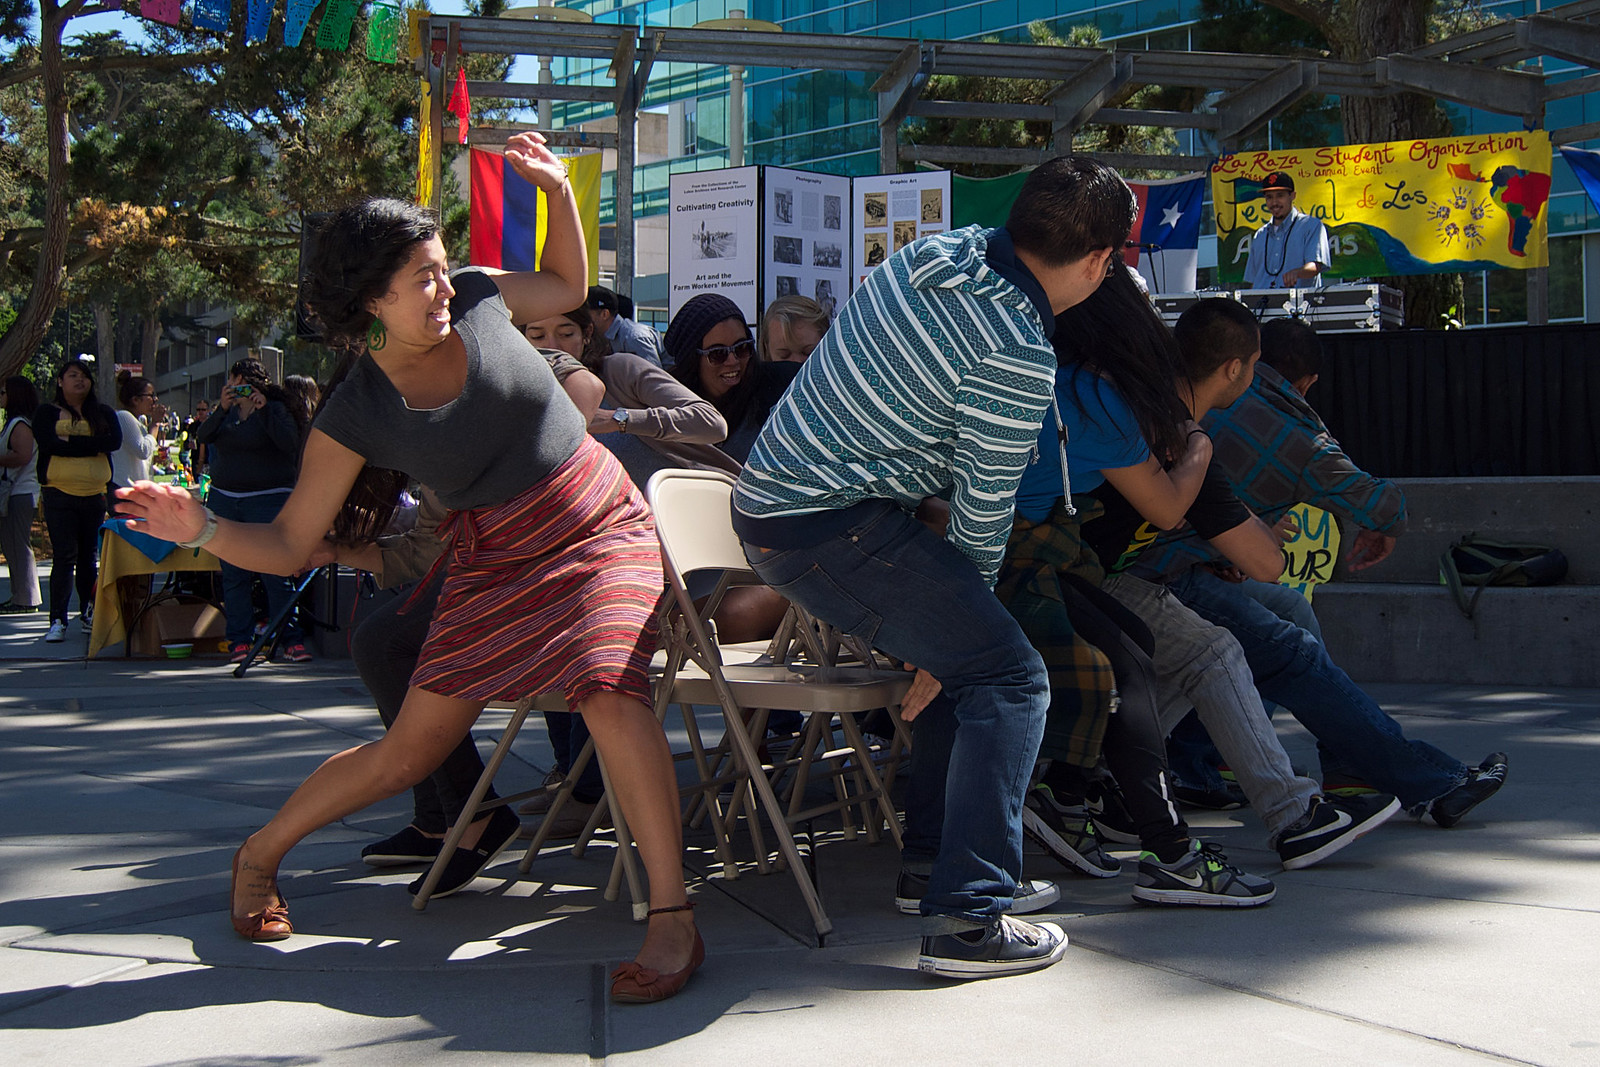 Emilytricia LÃpez Marchena misses her seat during a round of musical chairs at the La Raza Student Organization's festival in Malcolm X Plaza Sept 18, 2013. Photo by Kate O'Neal / Xpress